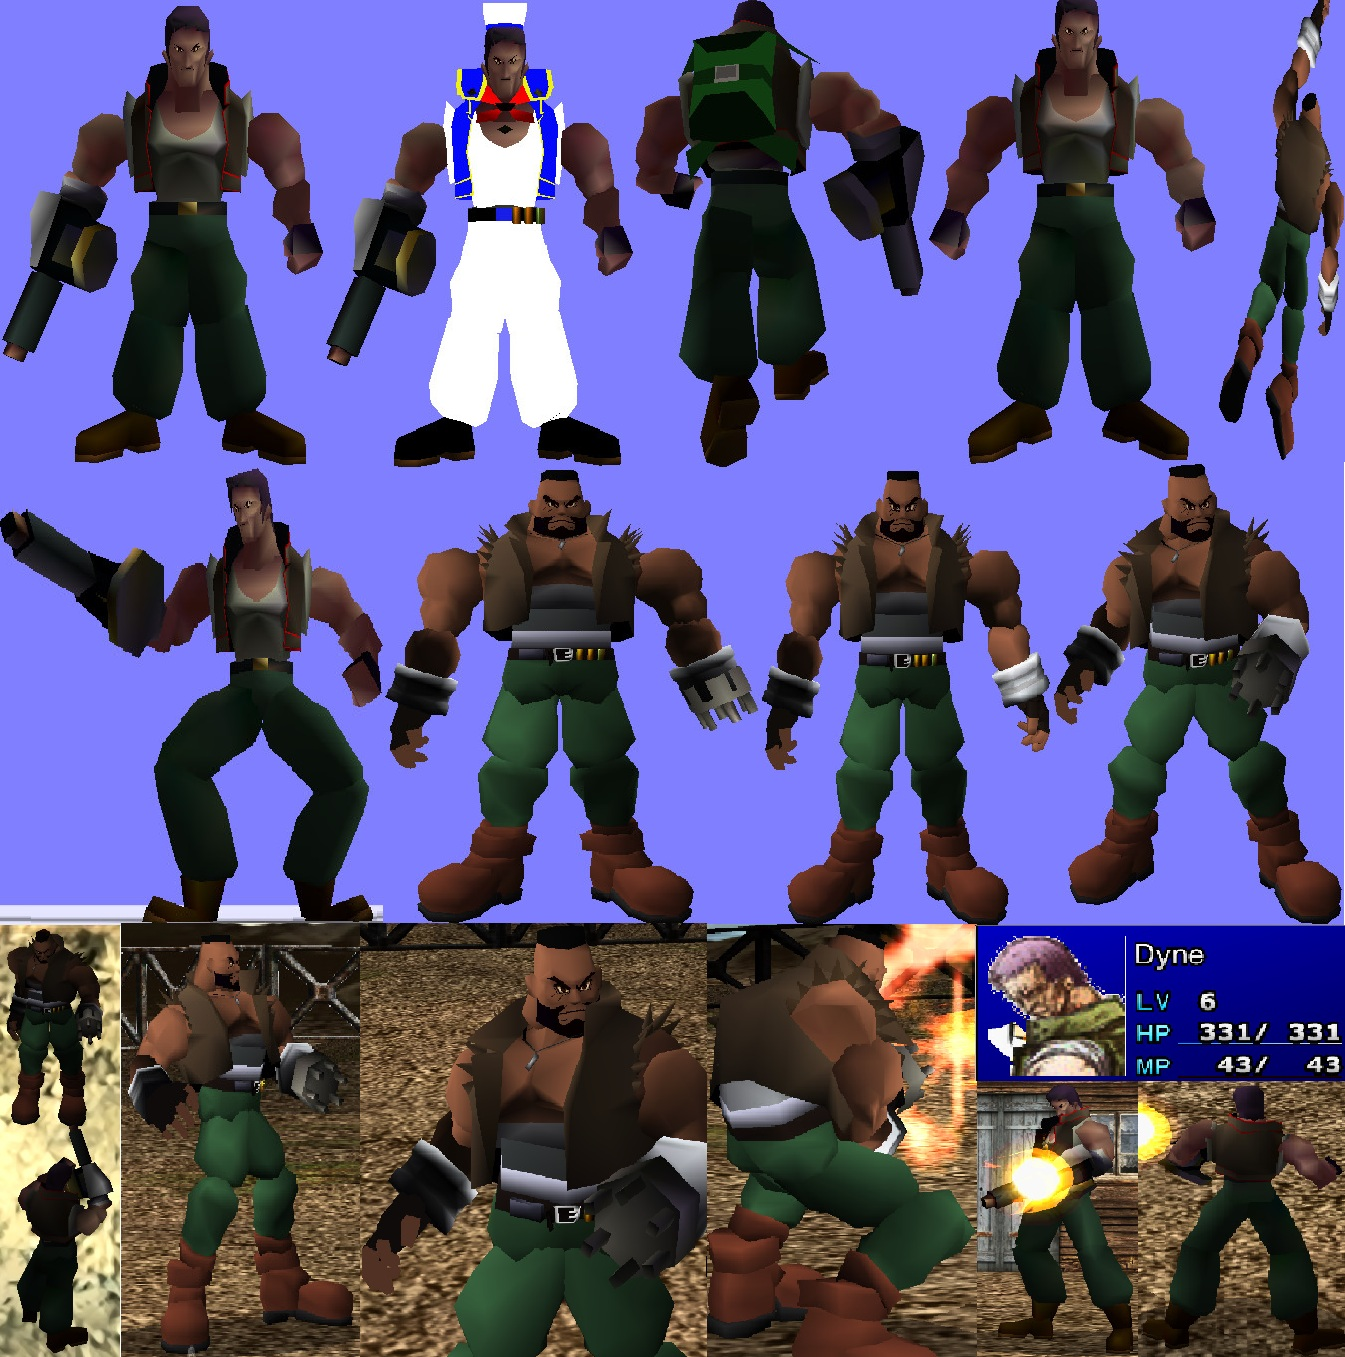 Final Fantasy 7 The Shinra CHARACTER overhaul MOD  - Mod DB